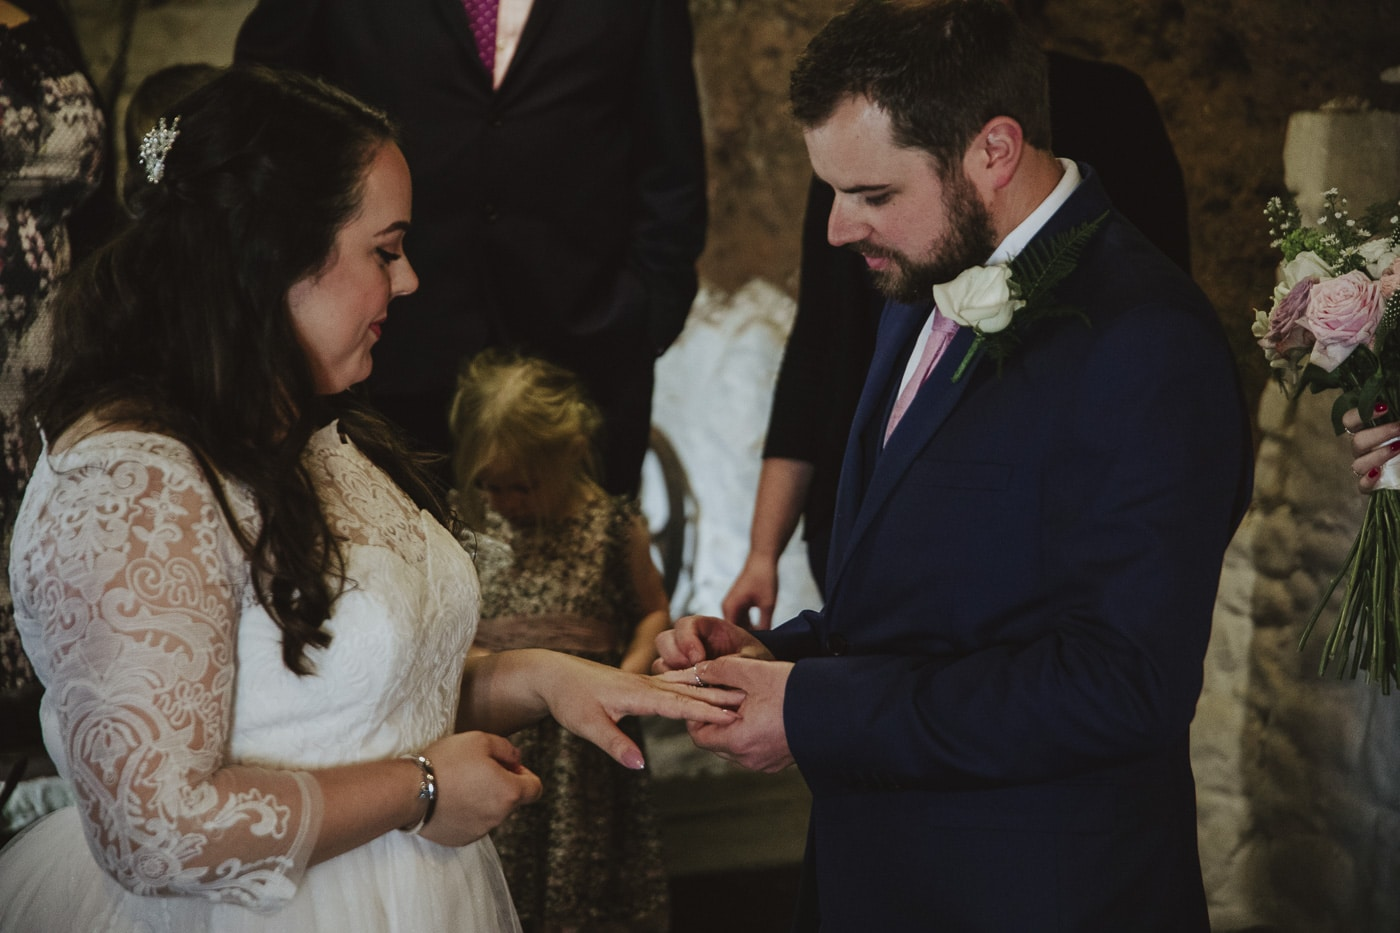 Groom giving bride her wedding ring by Joshua Wyborn